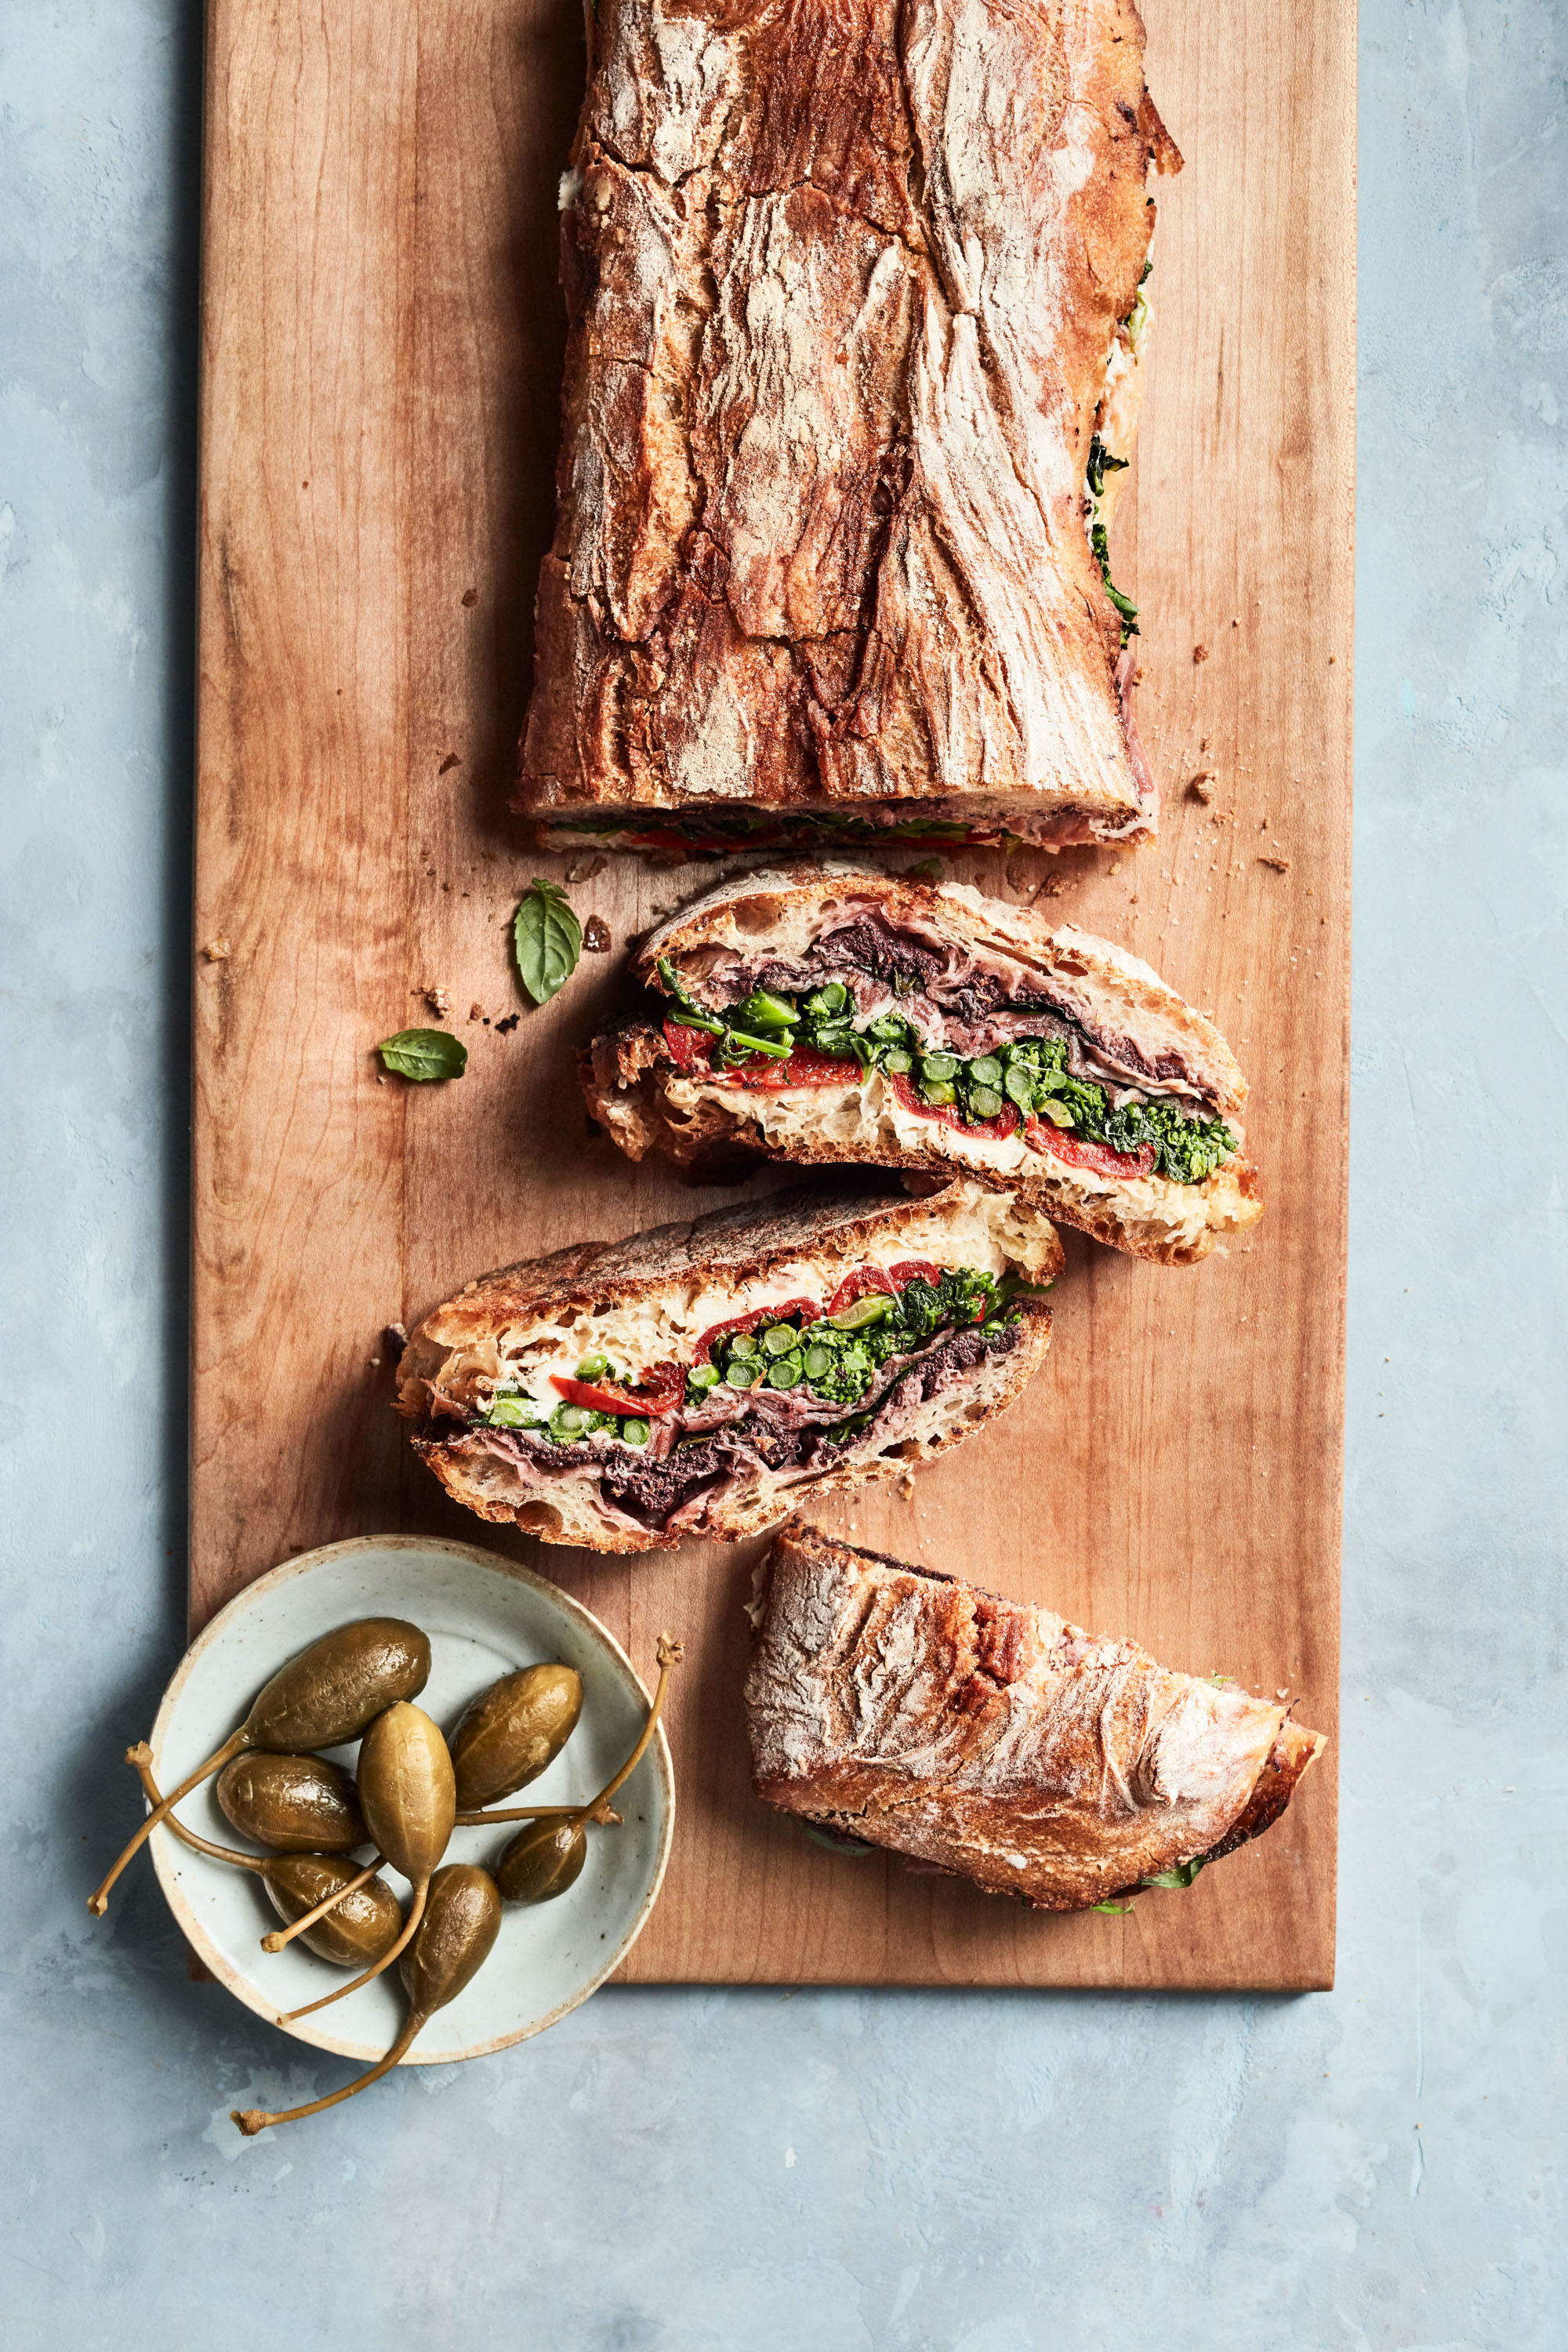 Make a Meal Out of These Dinner Sandwiches